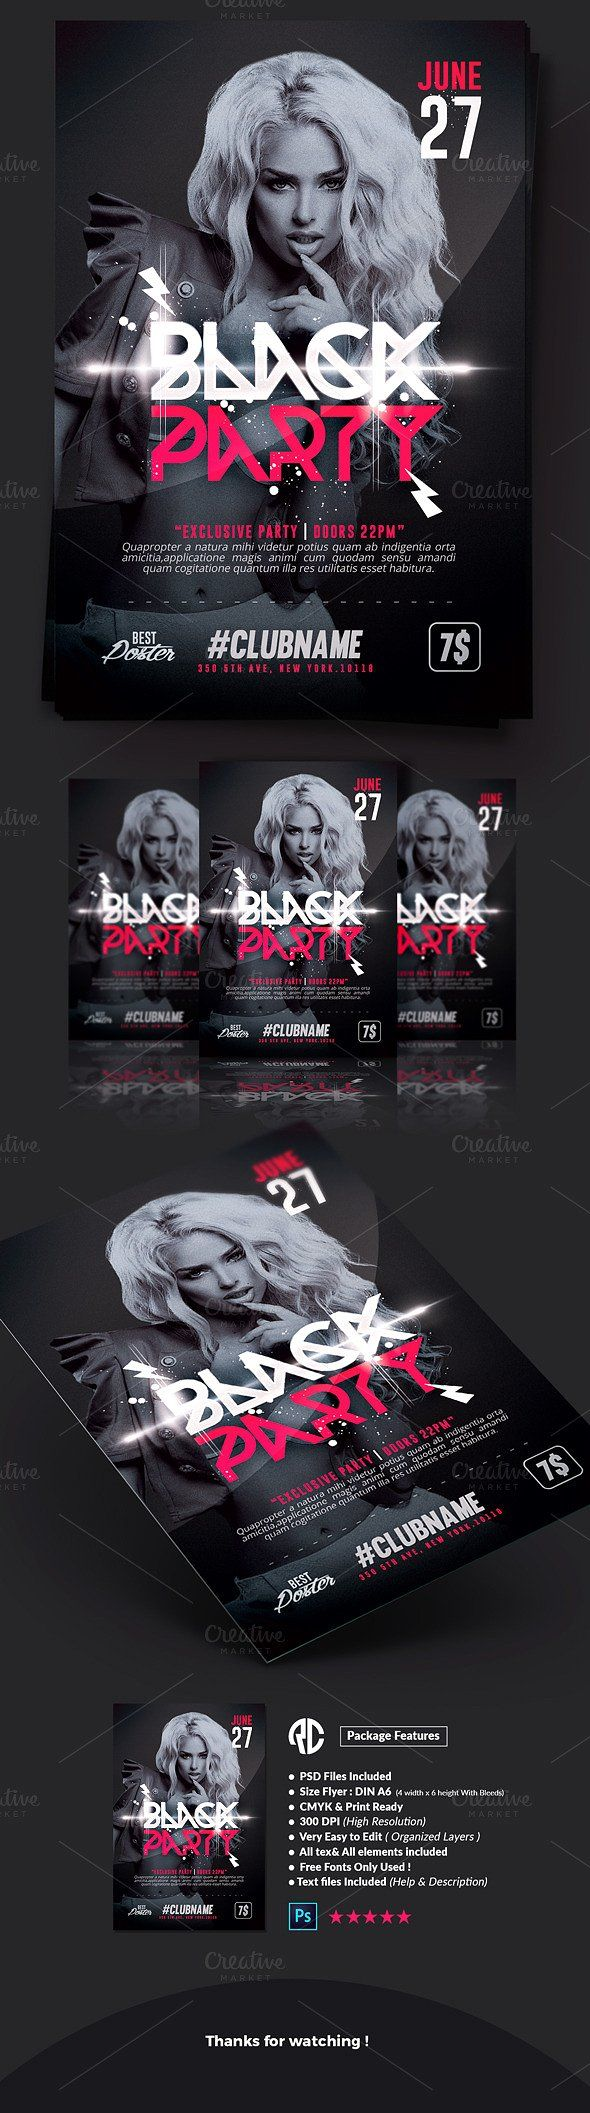 New  Black Party  Flyer Templates Exclusive Templates Creative